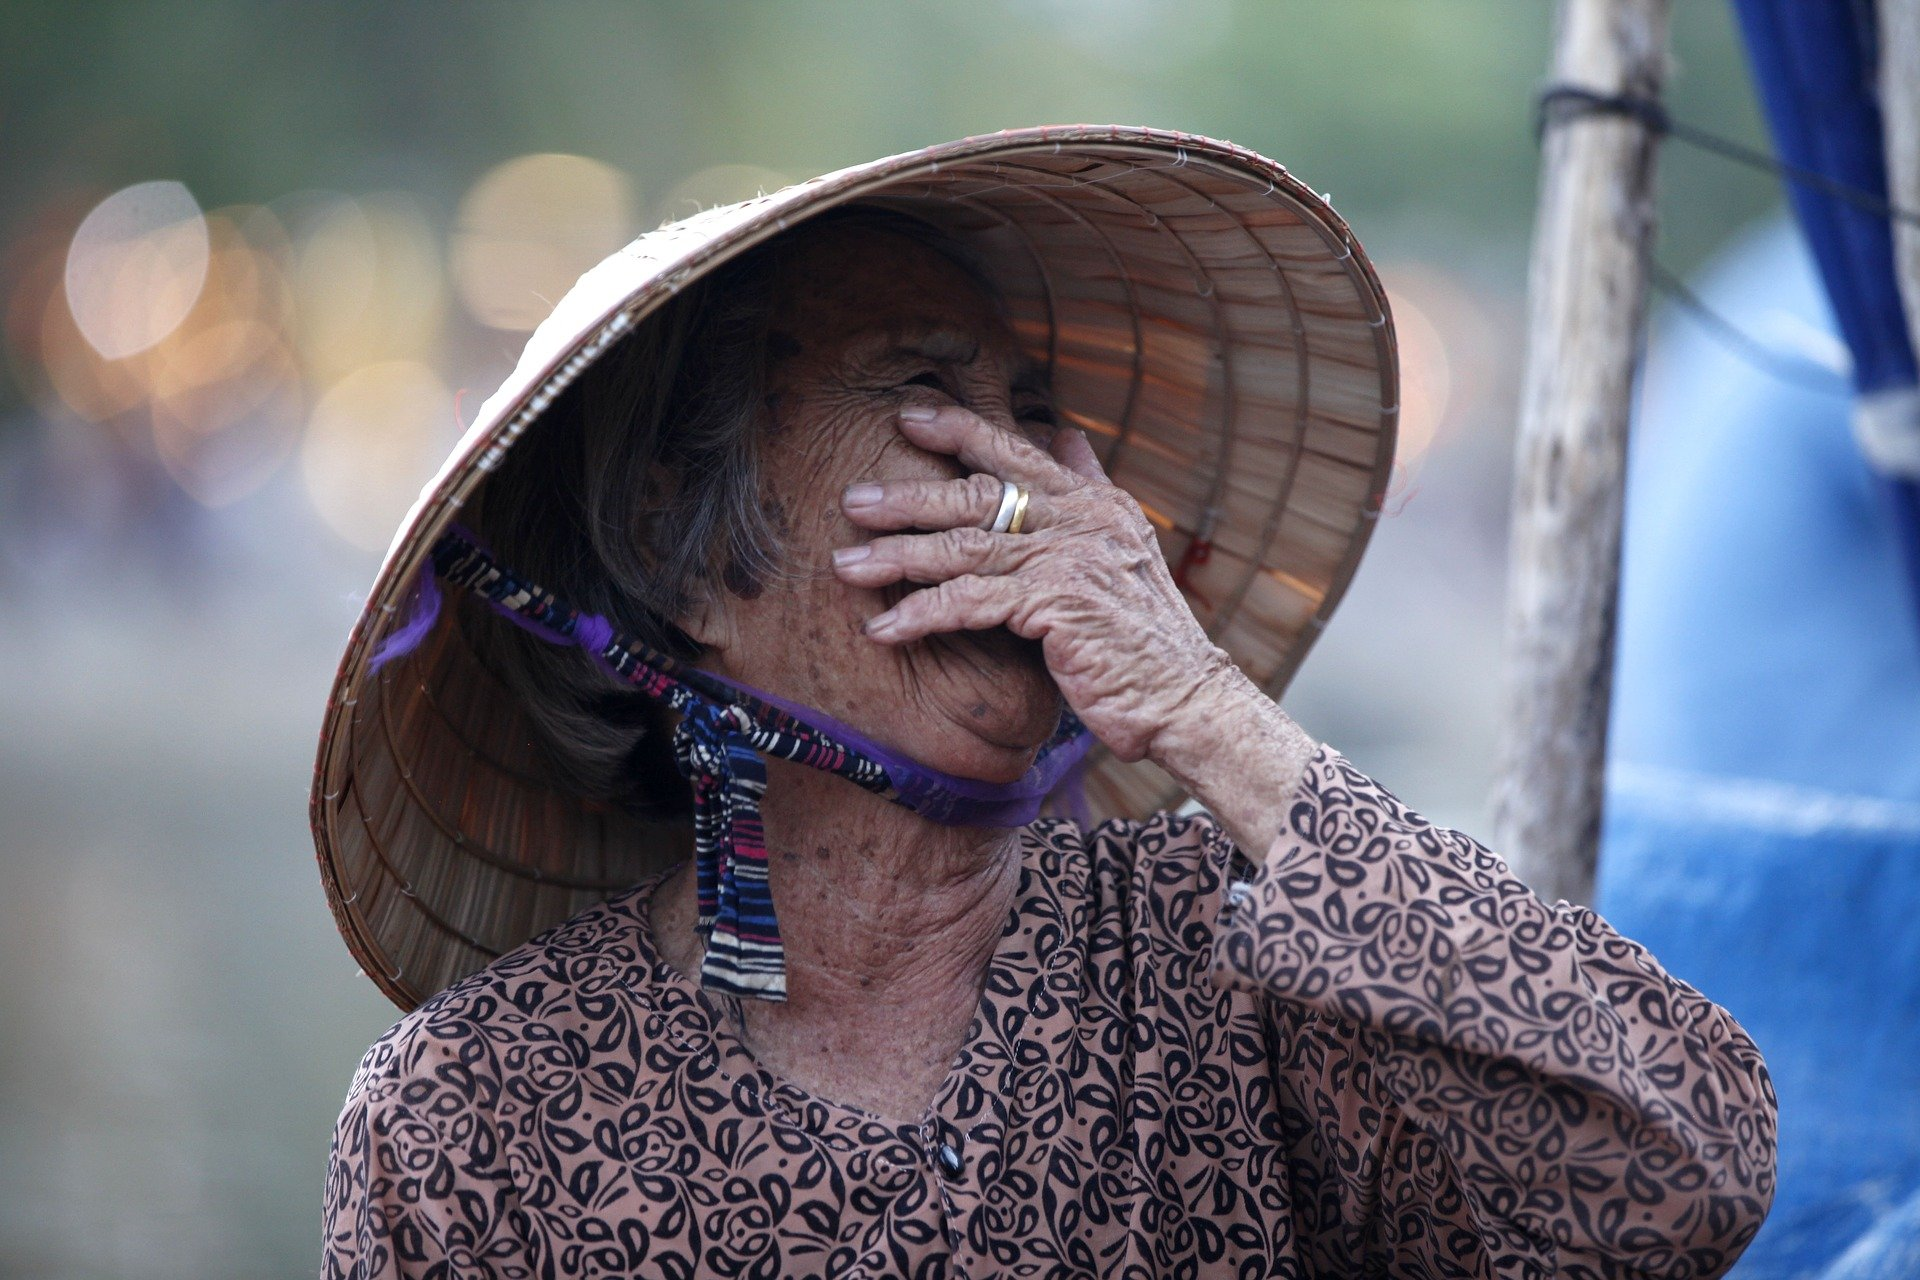 An old woman wearing a hat, covering her mouth while laughing   Photo: Pixabay/Thangphan